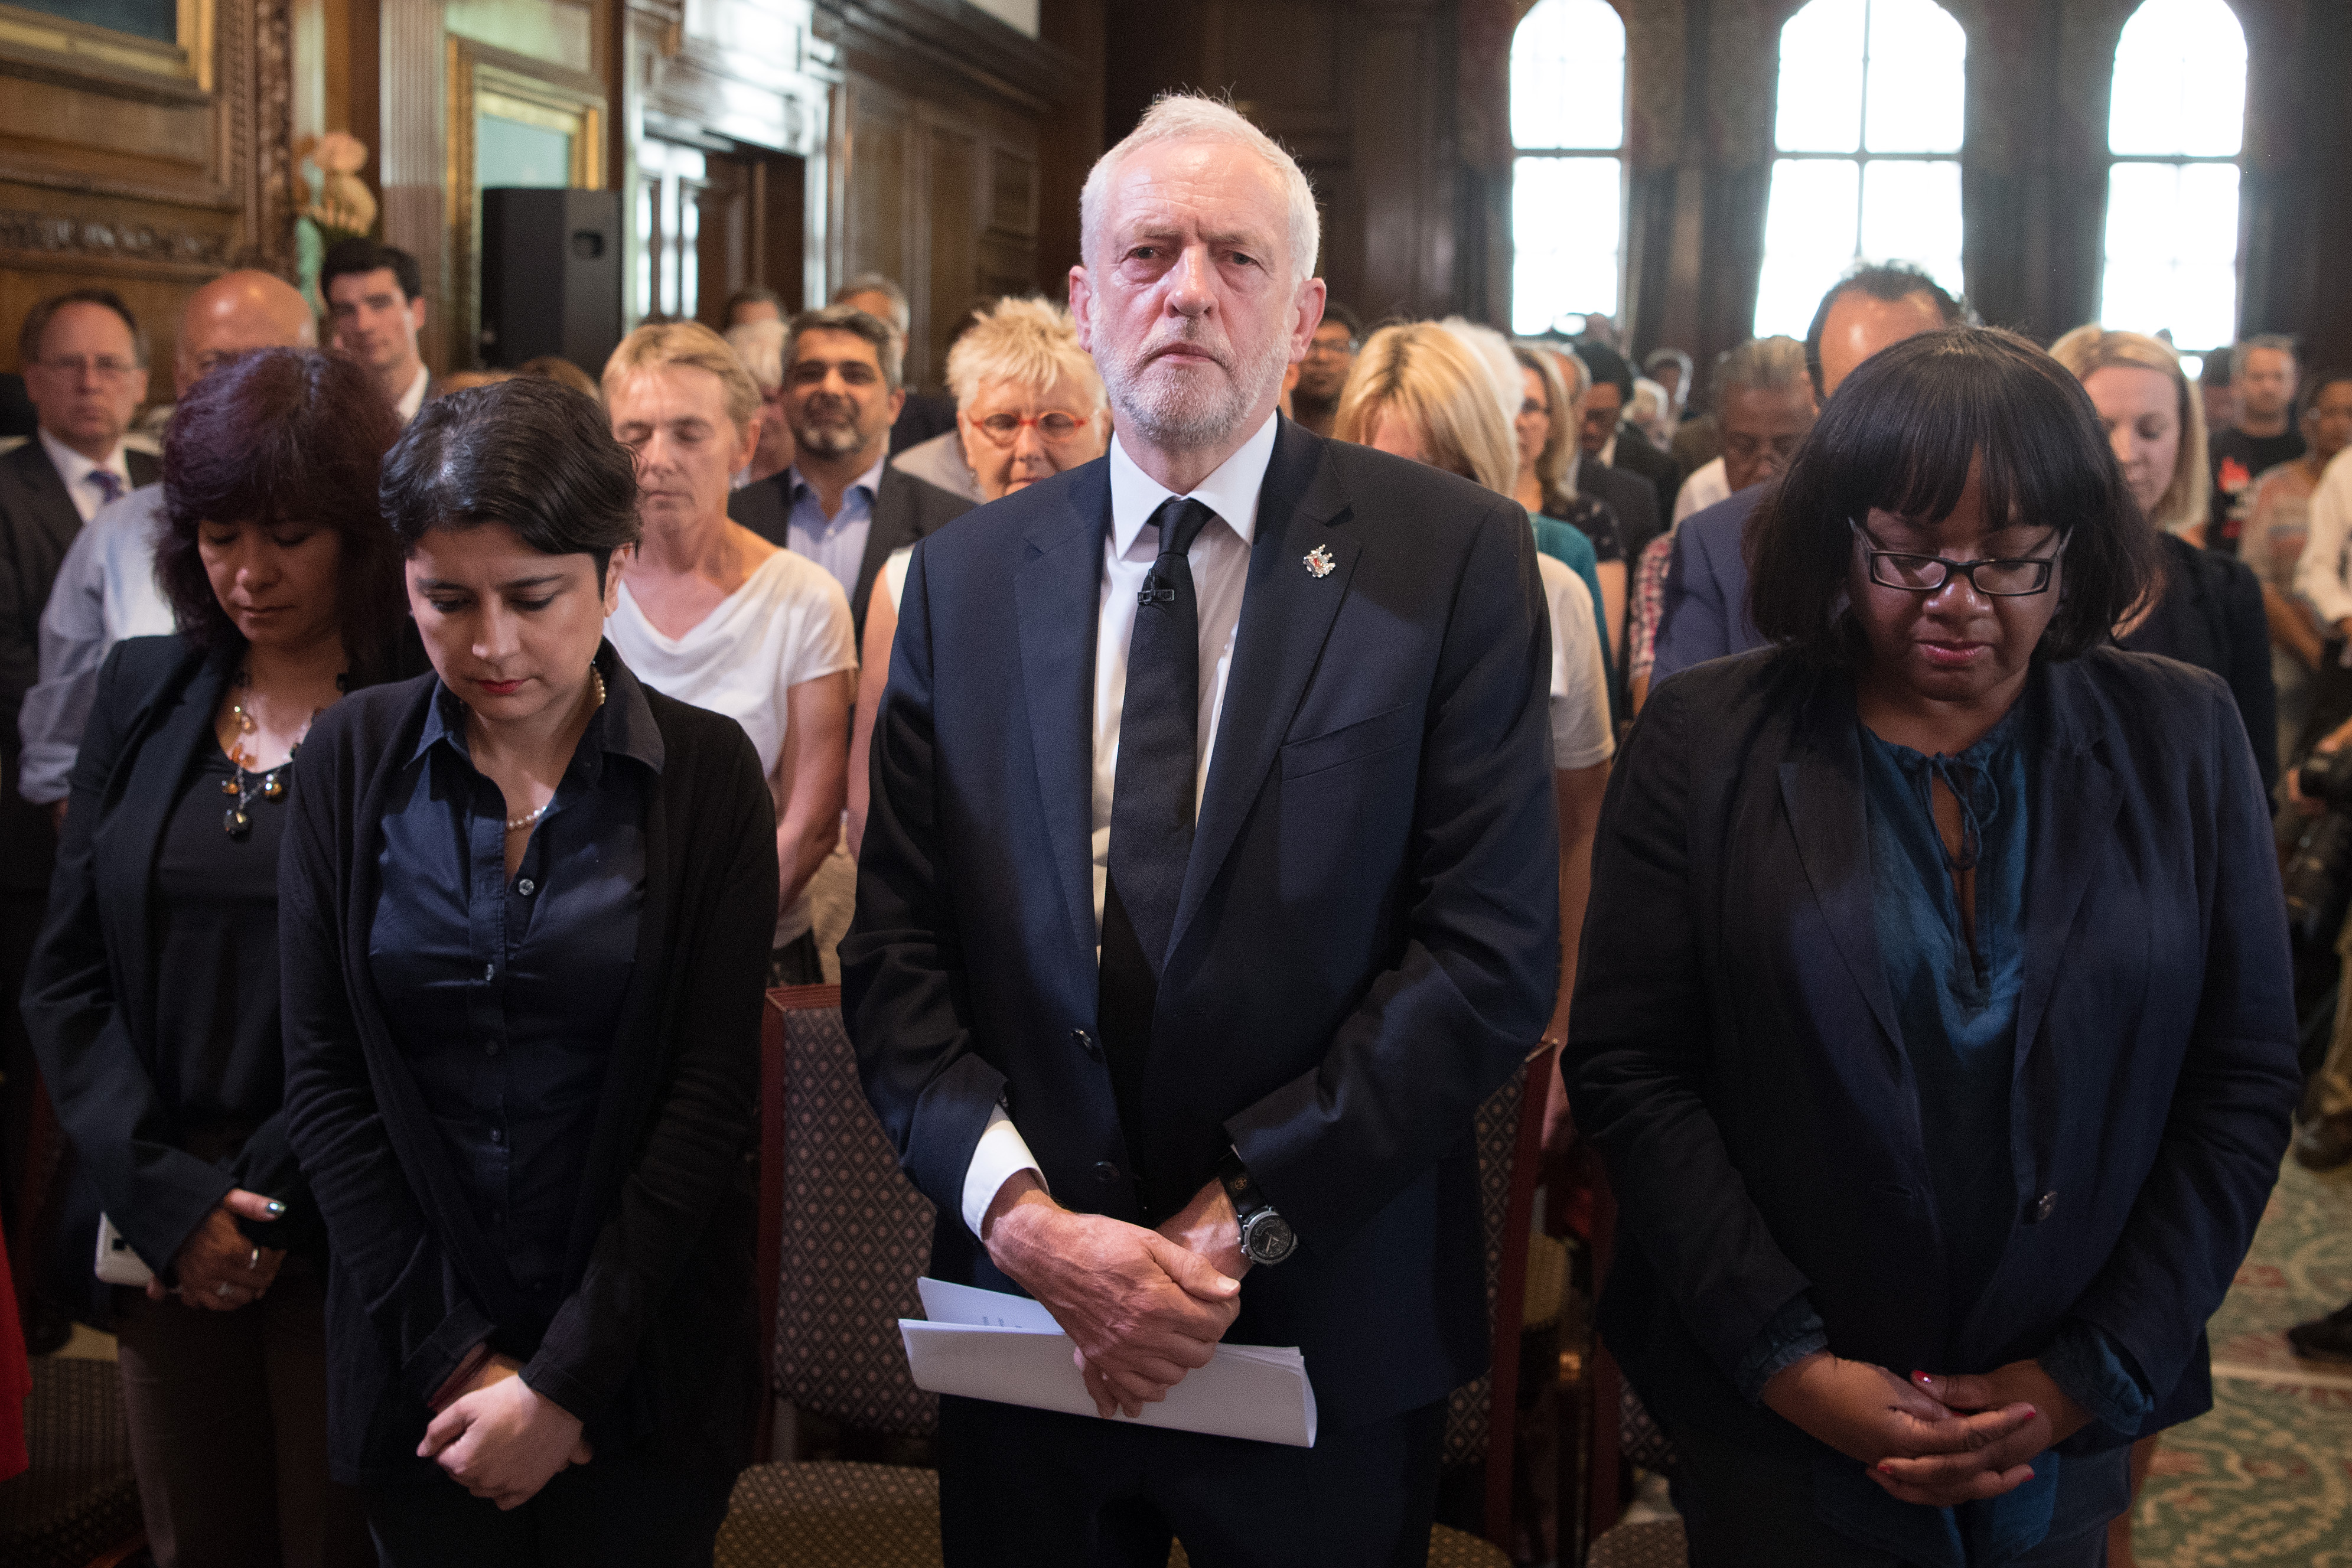 Labour Party leader Jeremy Corbyn. (OLI SCARFF/AFP/Getty Images)